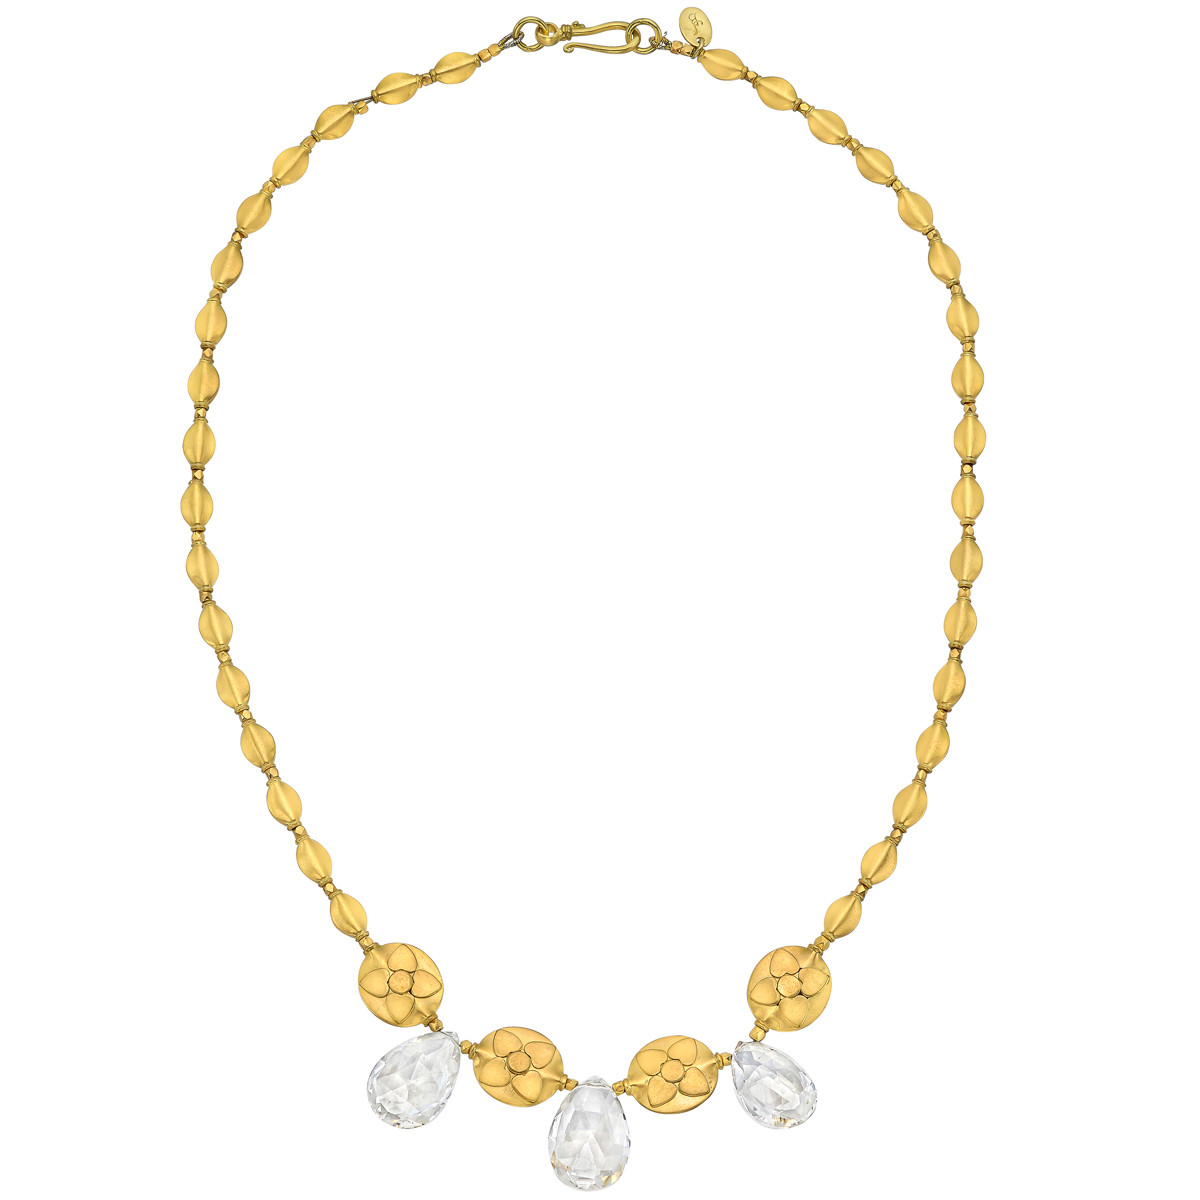 18k Yellow Gold Bead & Rock Crystal Fringe Necklace